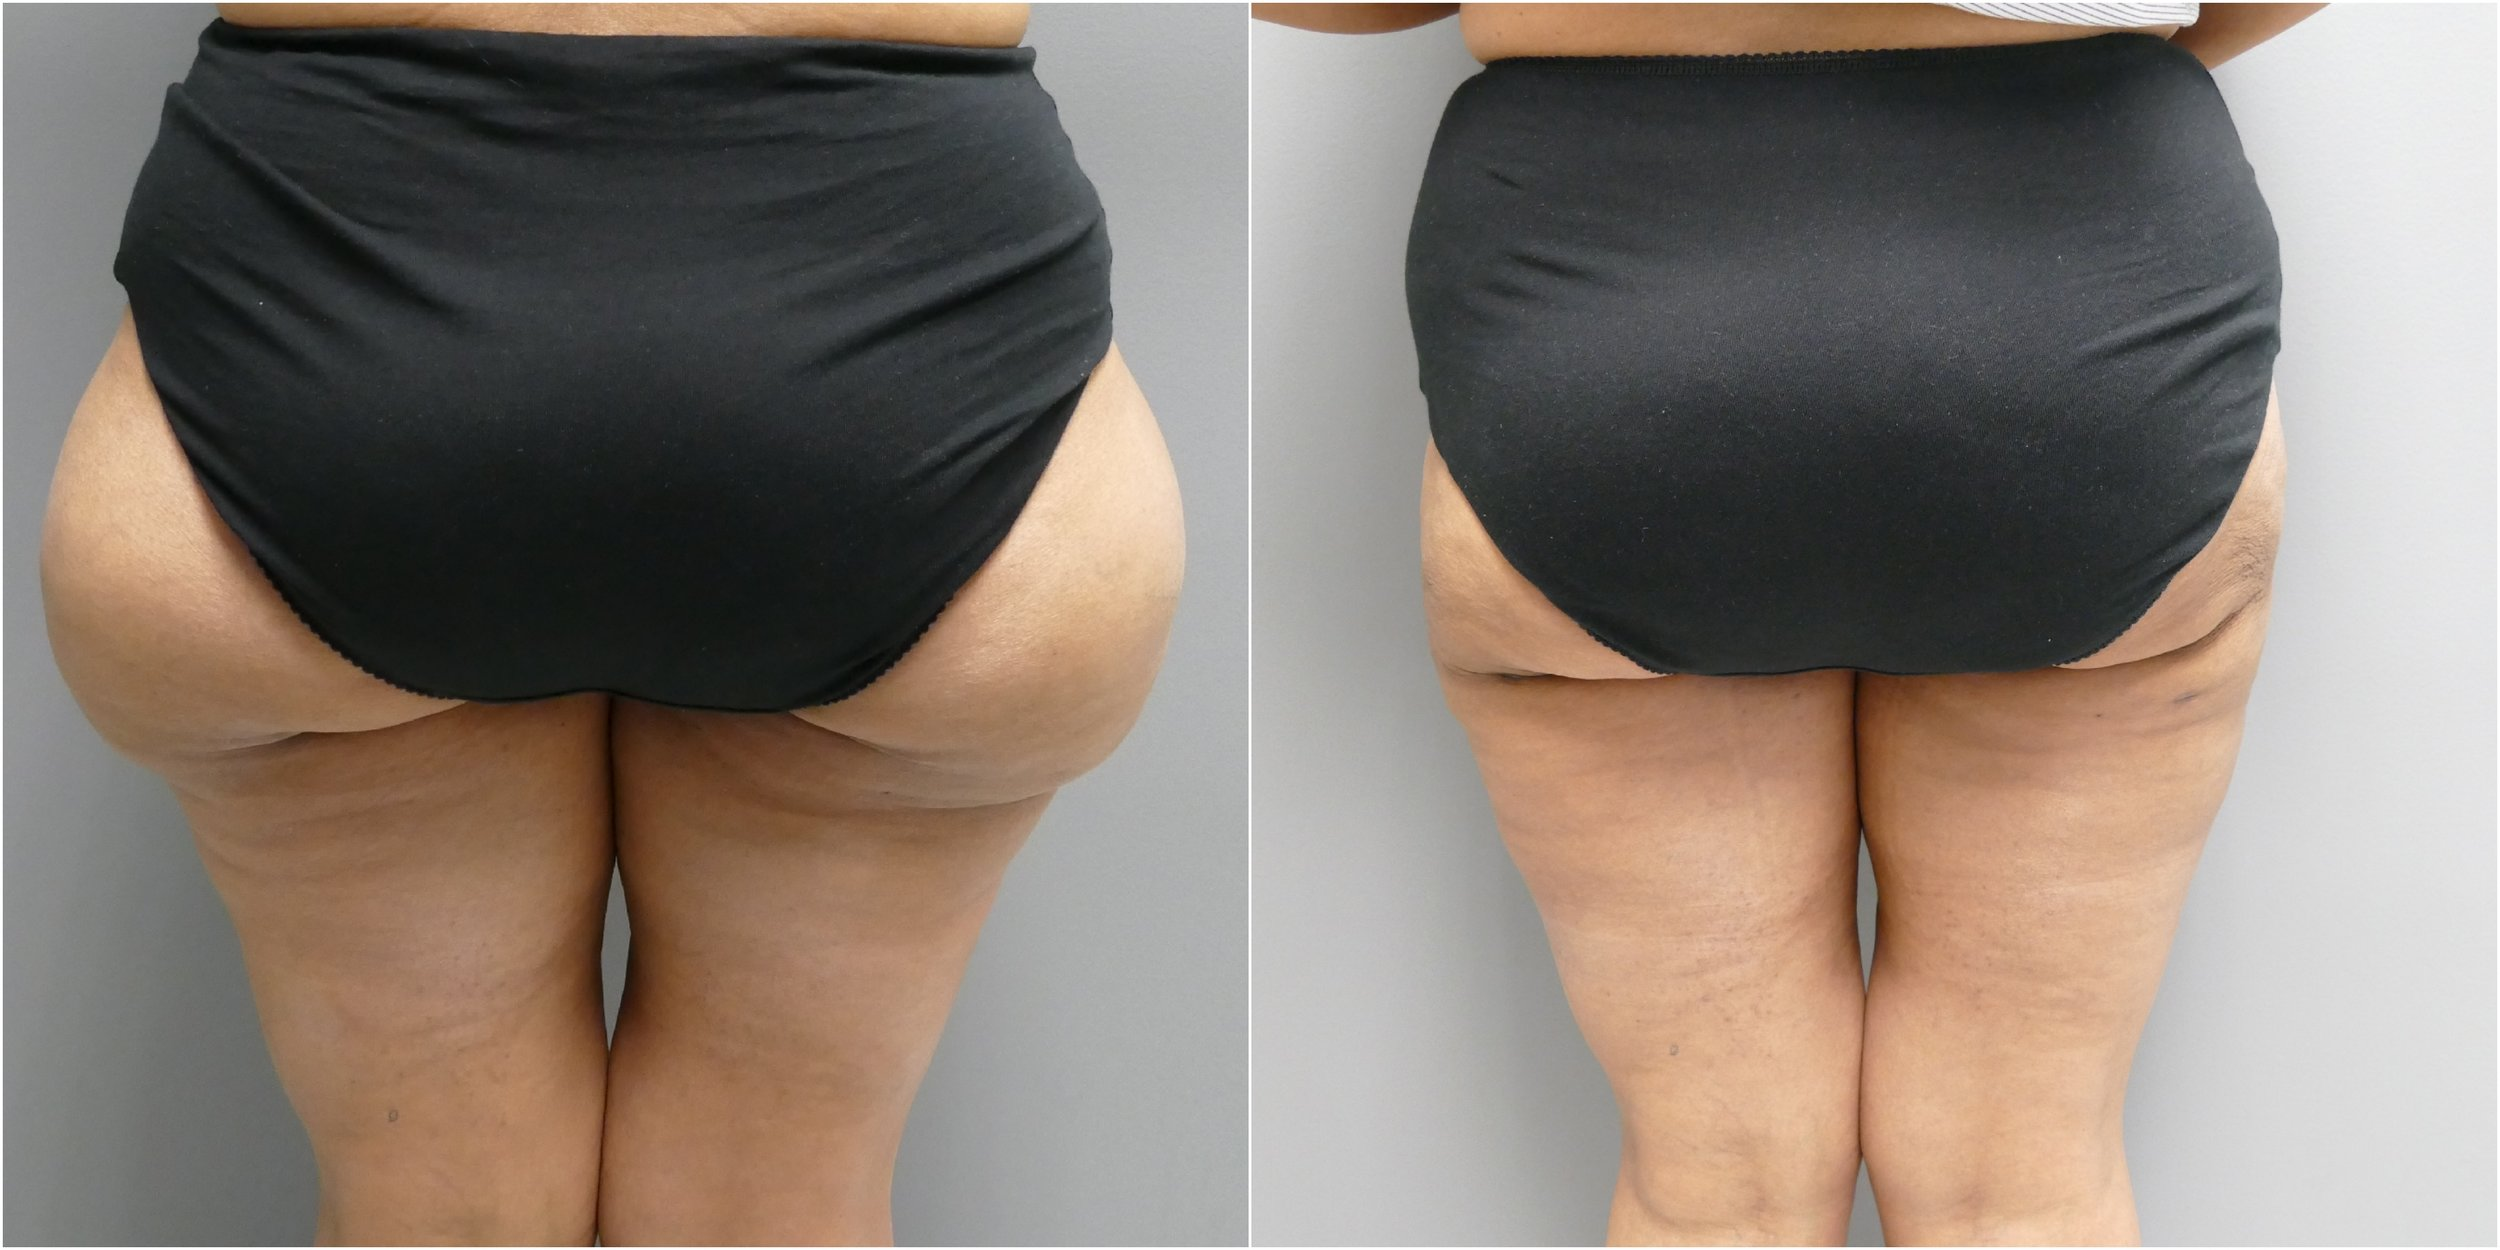 Combination Liposuction Modalities Yield Superior Body Sculpting Capabilities And Increased Patient Satisfaction.